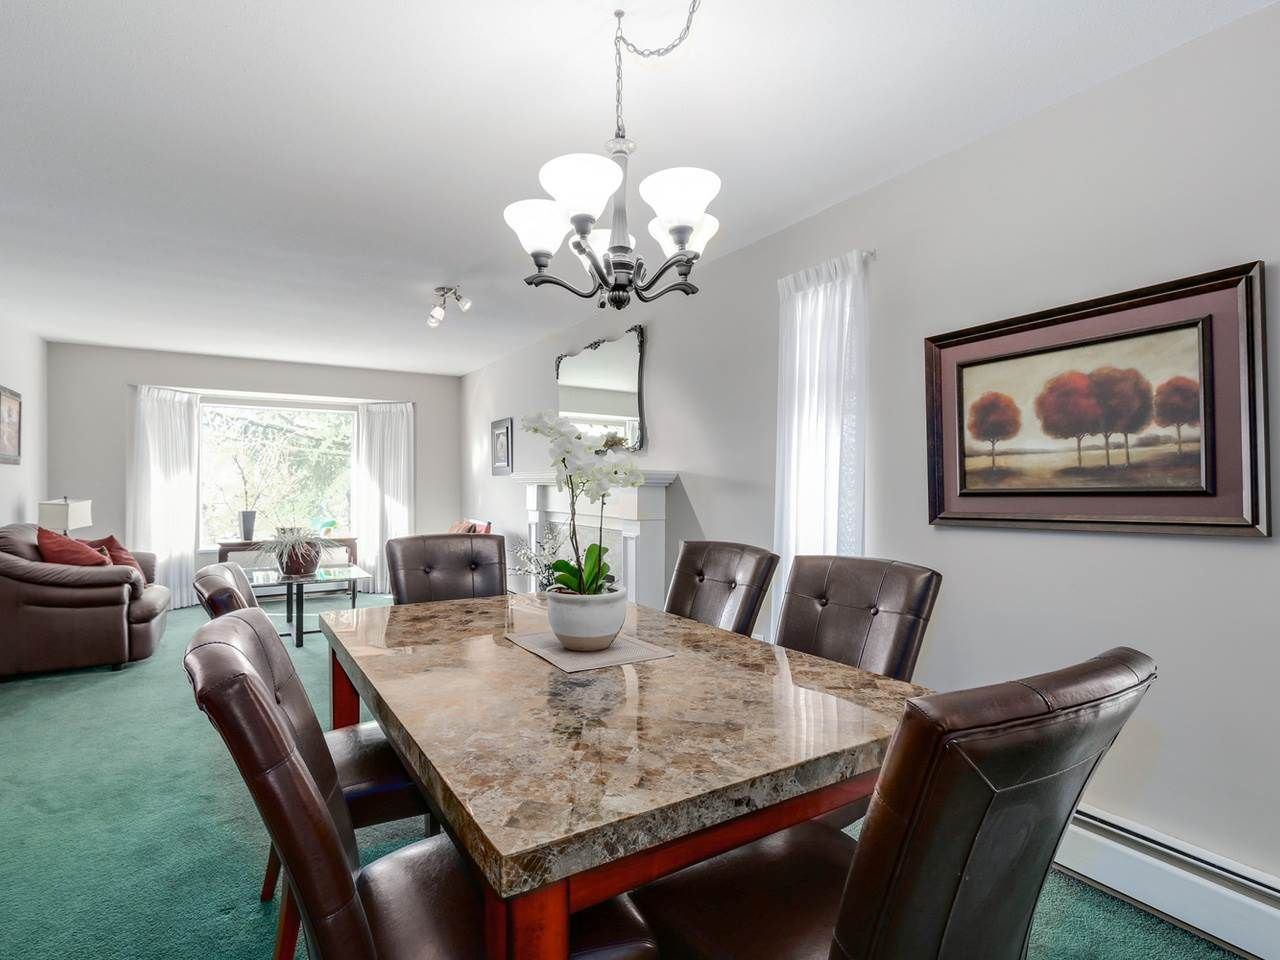 """Photo 9: Photos: 2559 BLUEBELL Avenue in Coquitlam: Summitt View House for sale in """"SUMMITT VIEW"""" : MLS®# R2064204"""